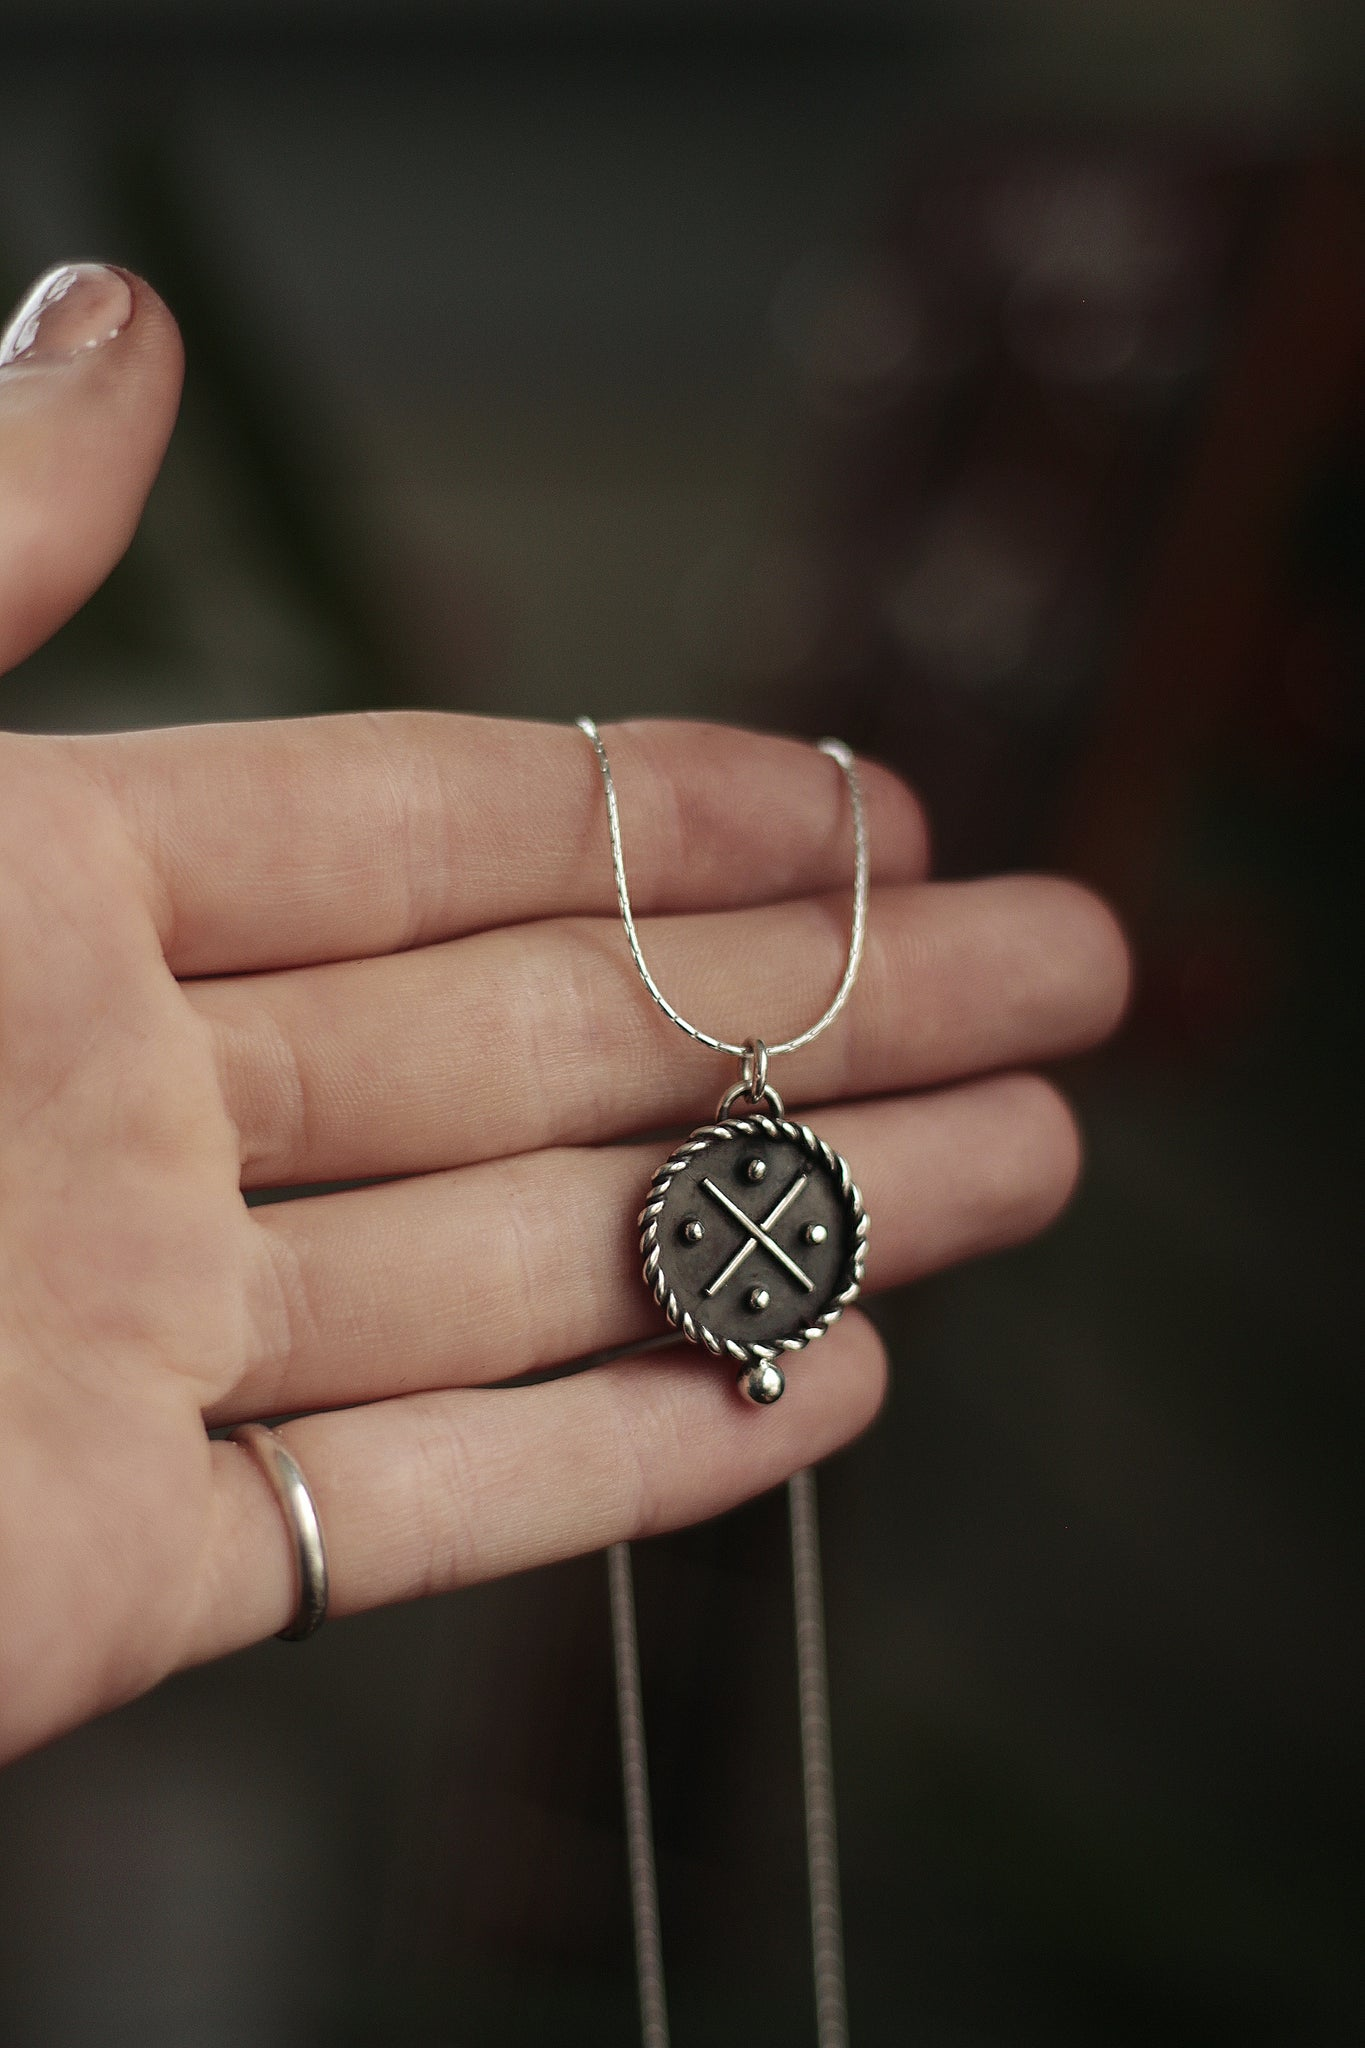 Spinning Compass Medallion Pendant